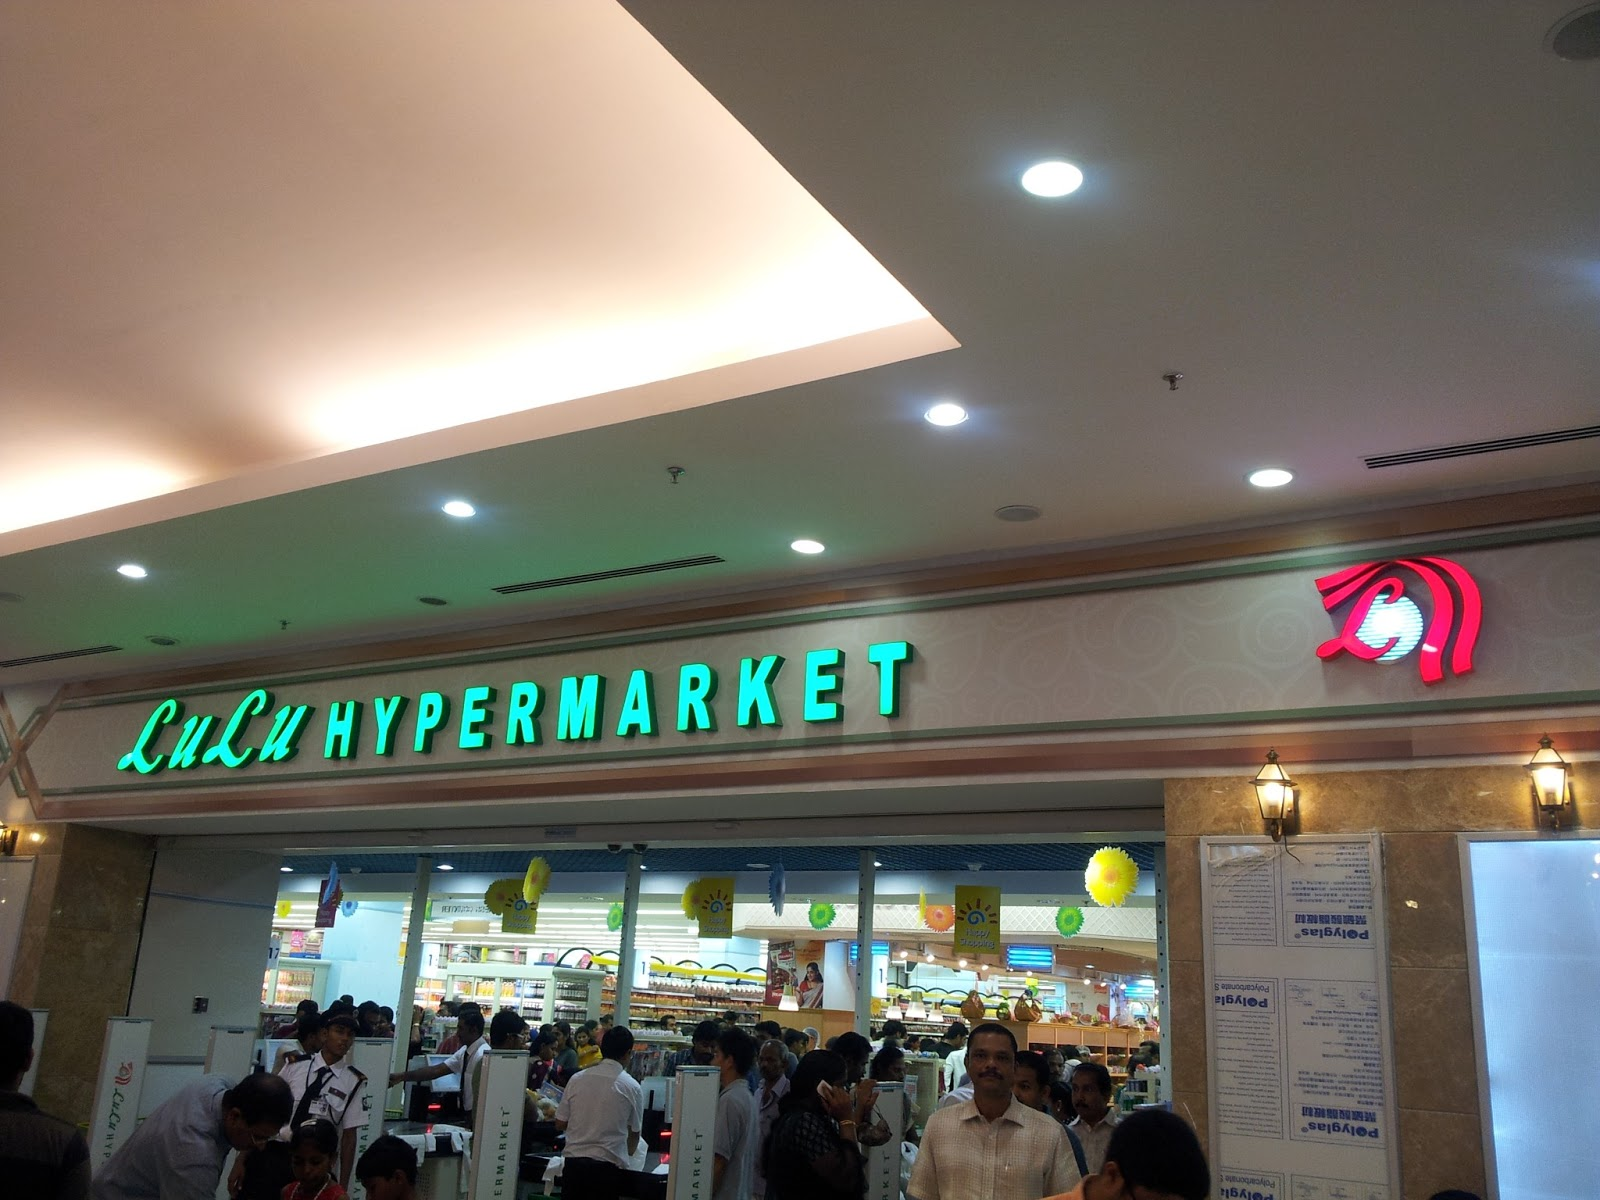 Top Retailers in India. Nov 29, , The company further plans to launch its hypermart in Delhi / NCR, Hyderabad, Vijaywada, Pune and Ludhiana region.